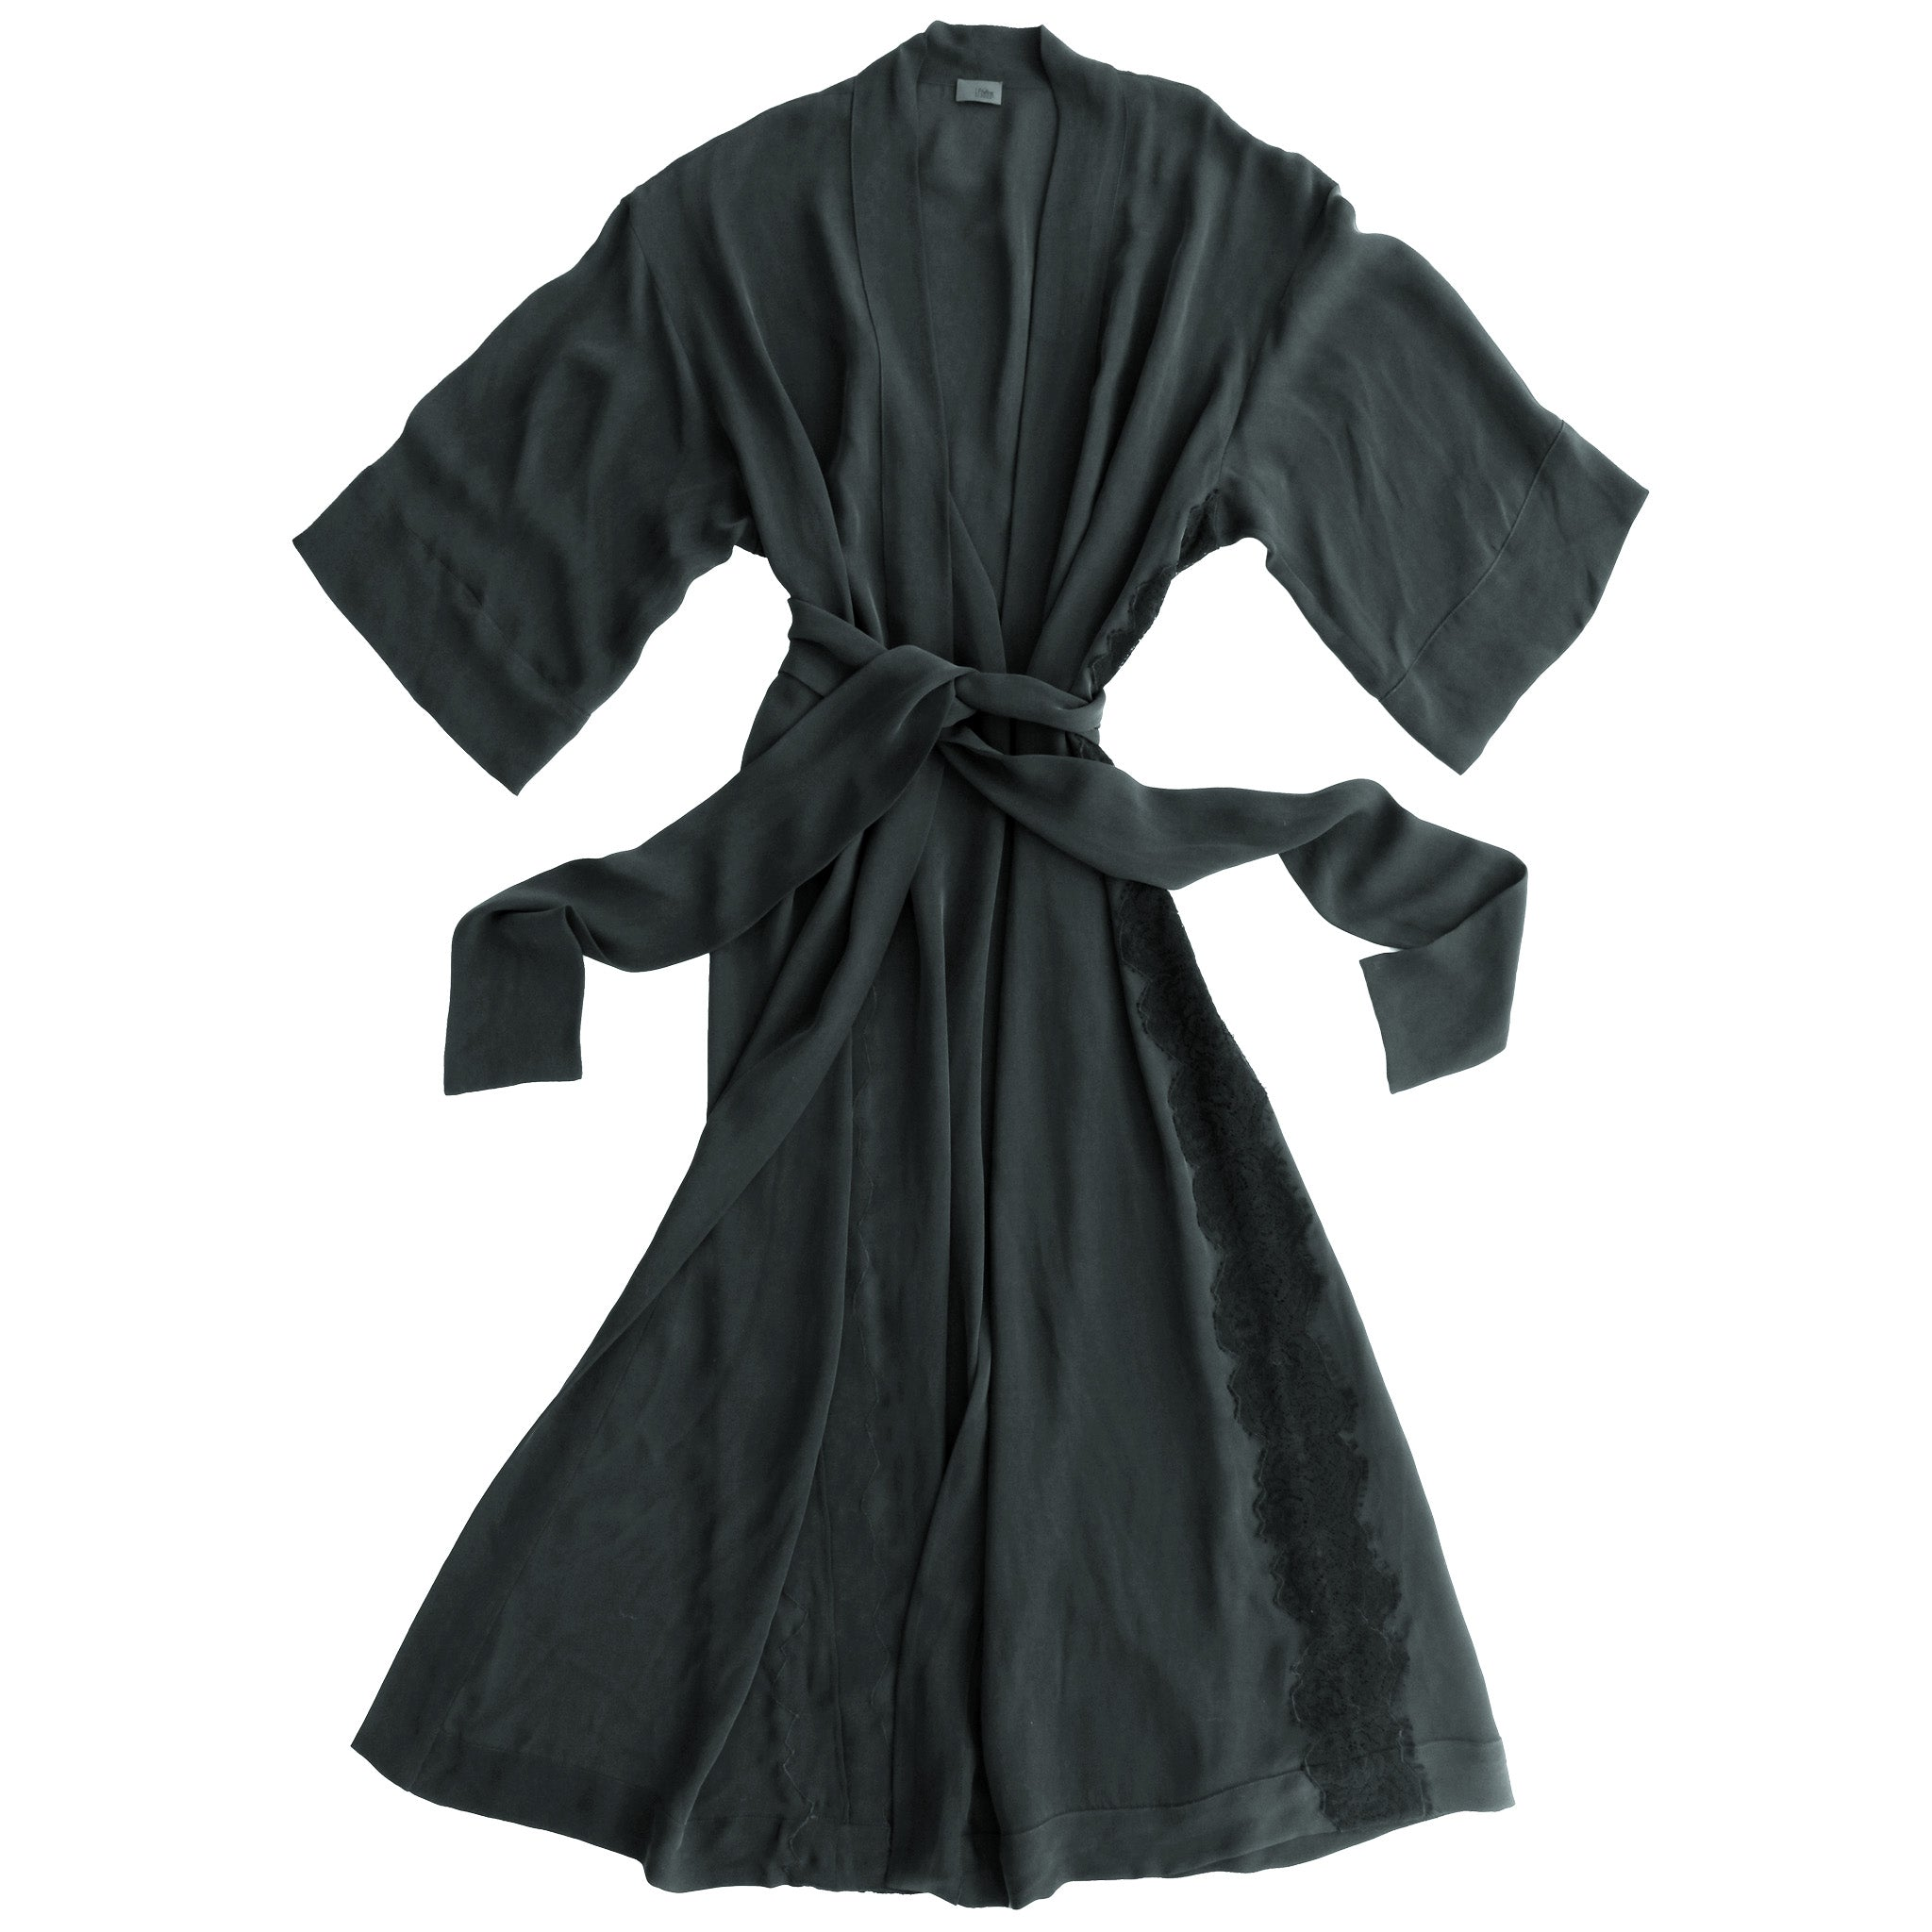 Asteria Dressing Gown in Black Double Georgette